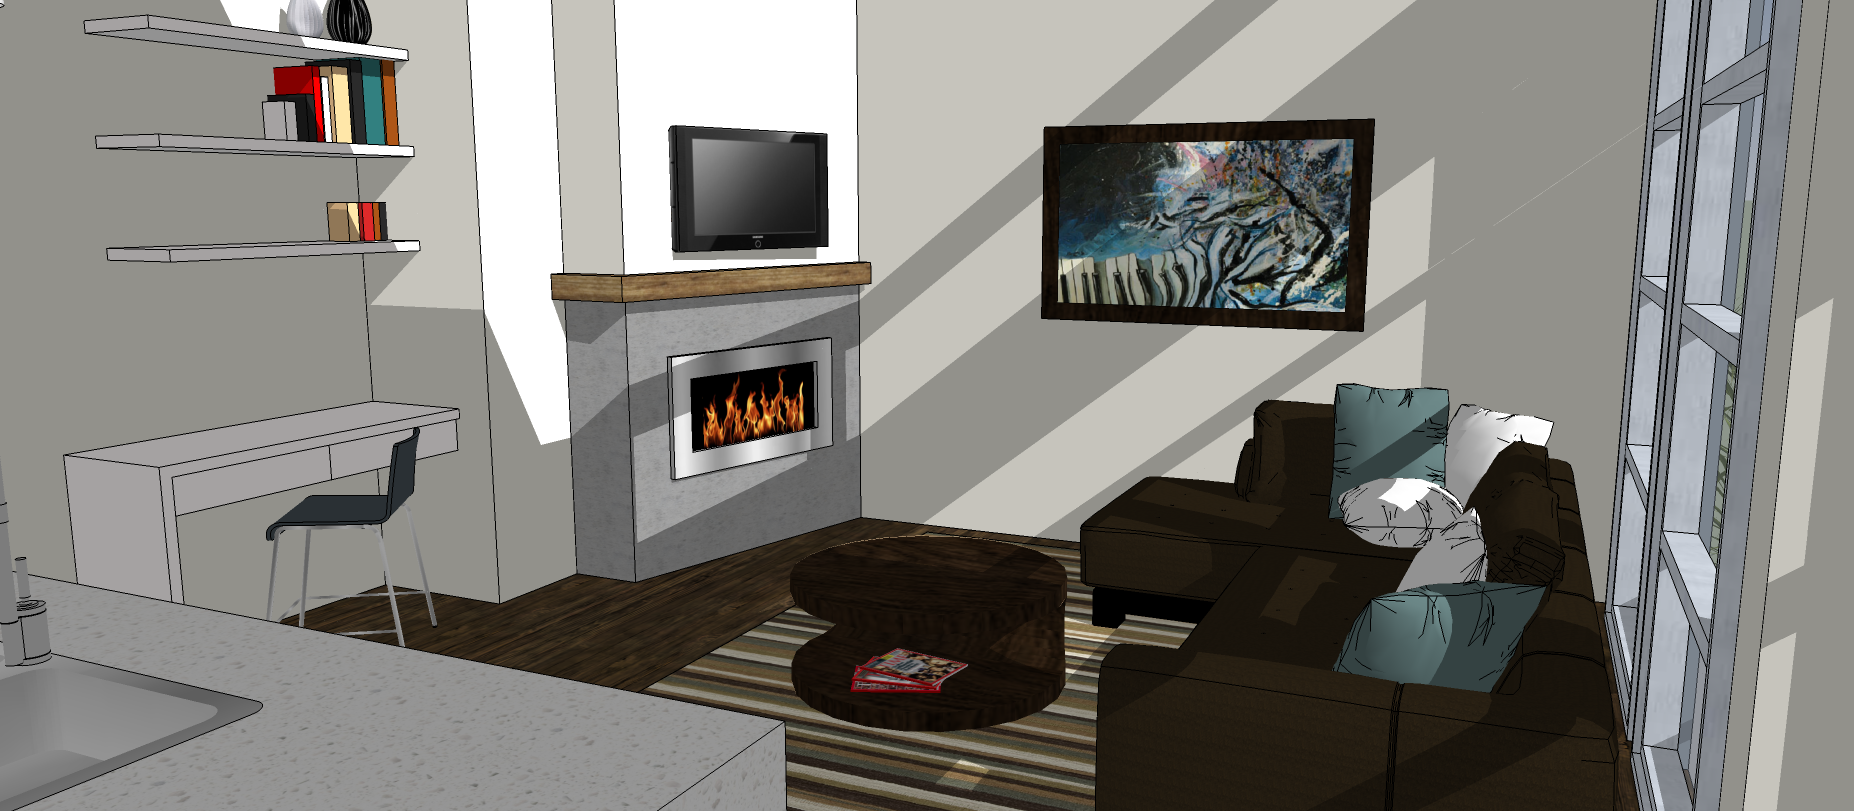 13.03.21_Happy Valley Rd_SketchUp Review_7.png